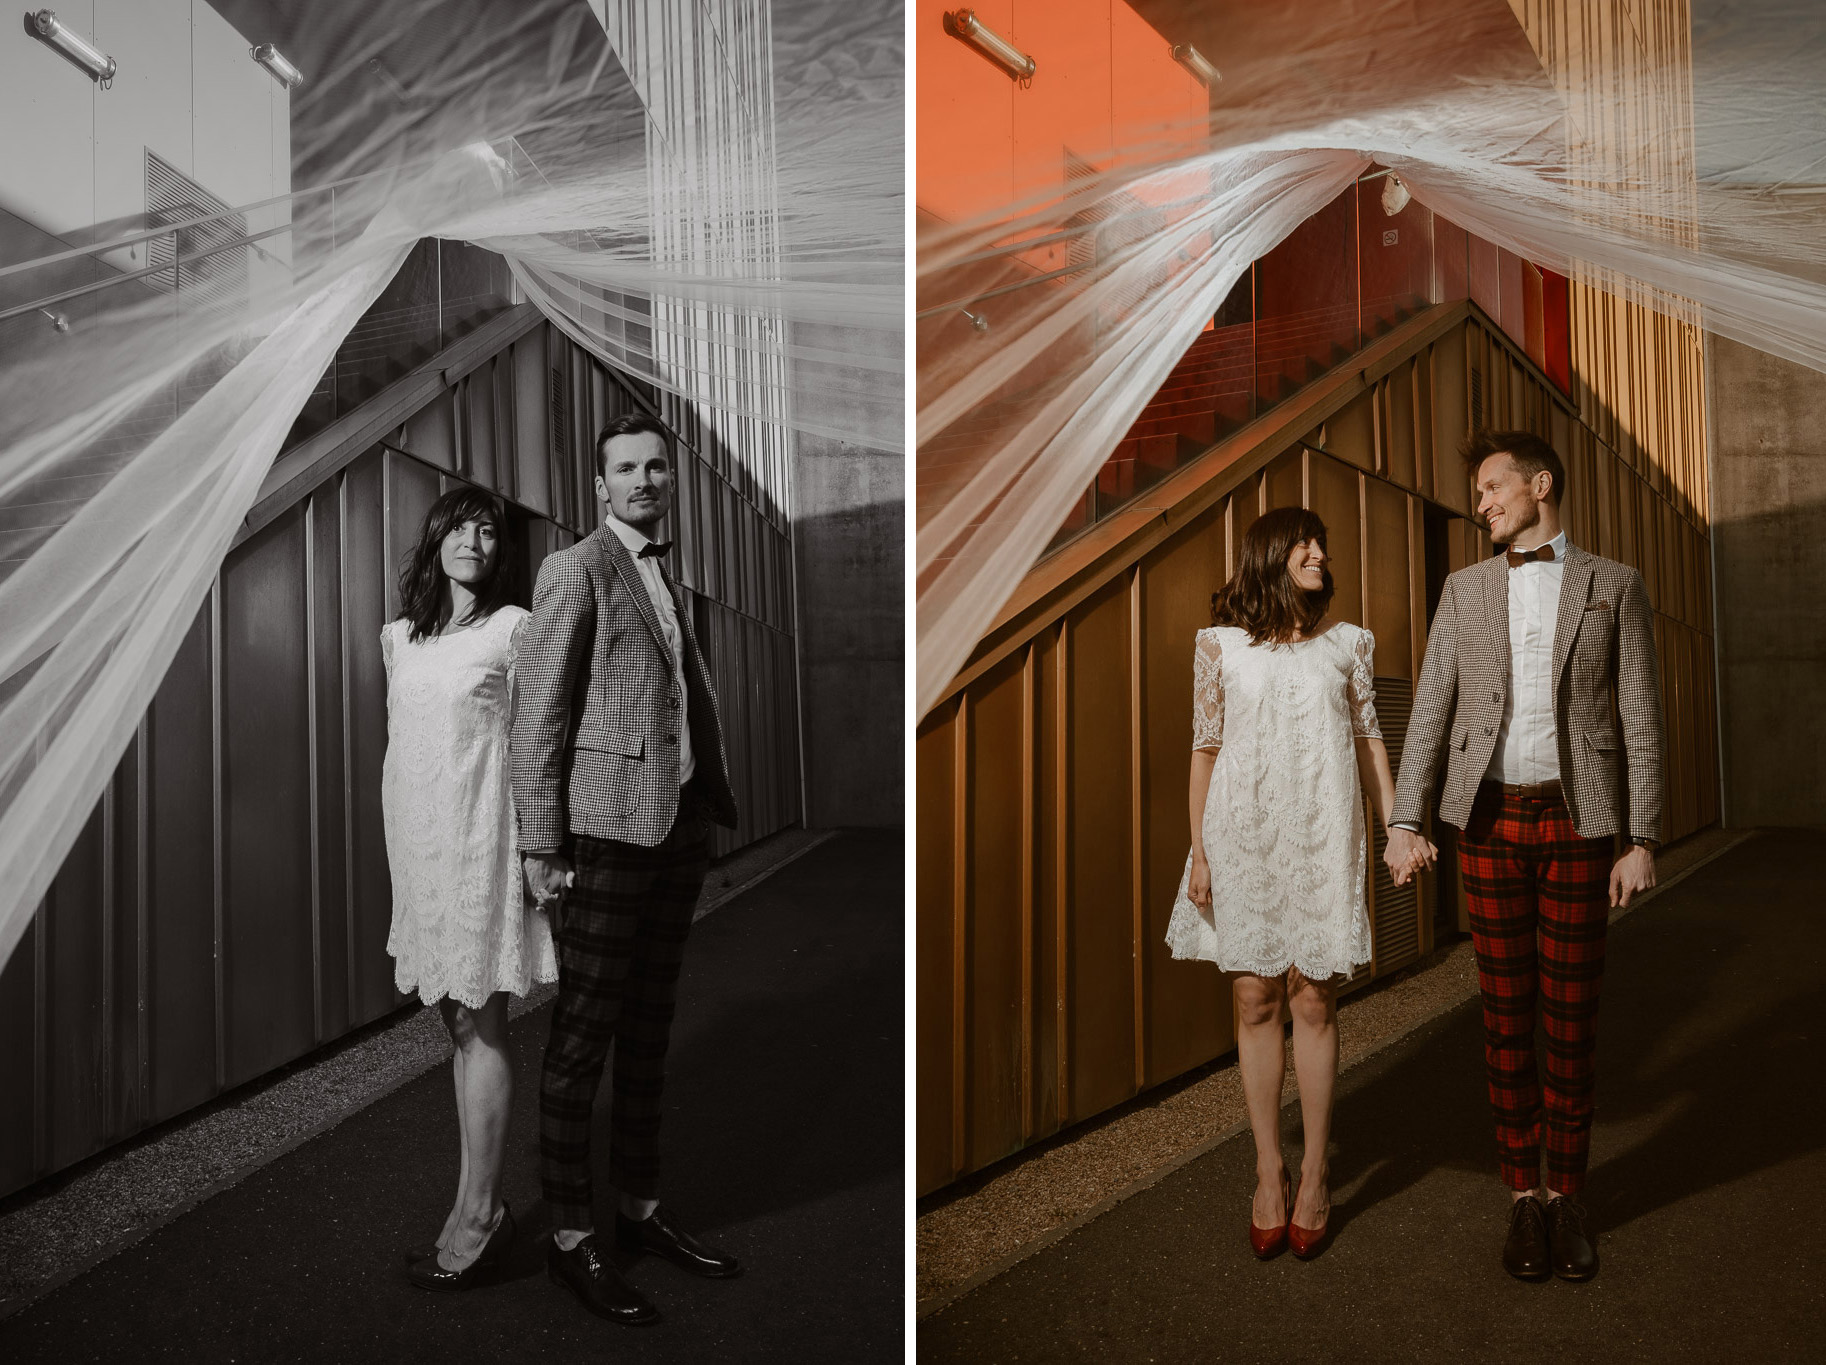 photo d'une séance de couple day-after originale & créative inspirée des univers de la mode et de l'architecture par Geoffrey Arnoldy photographe